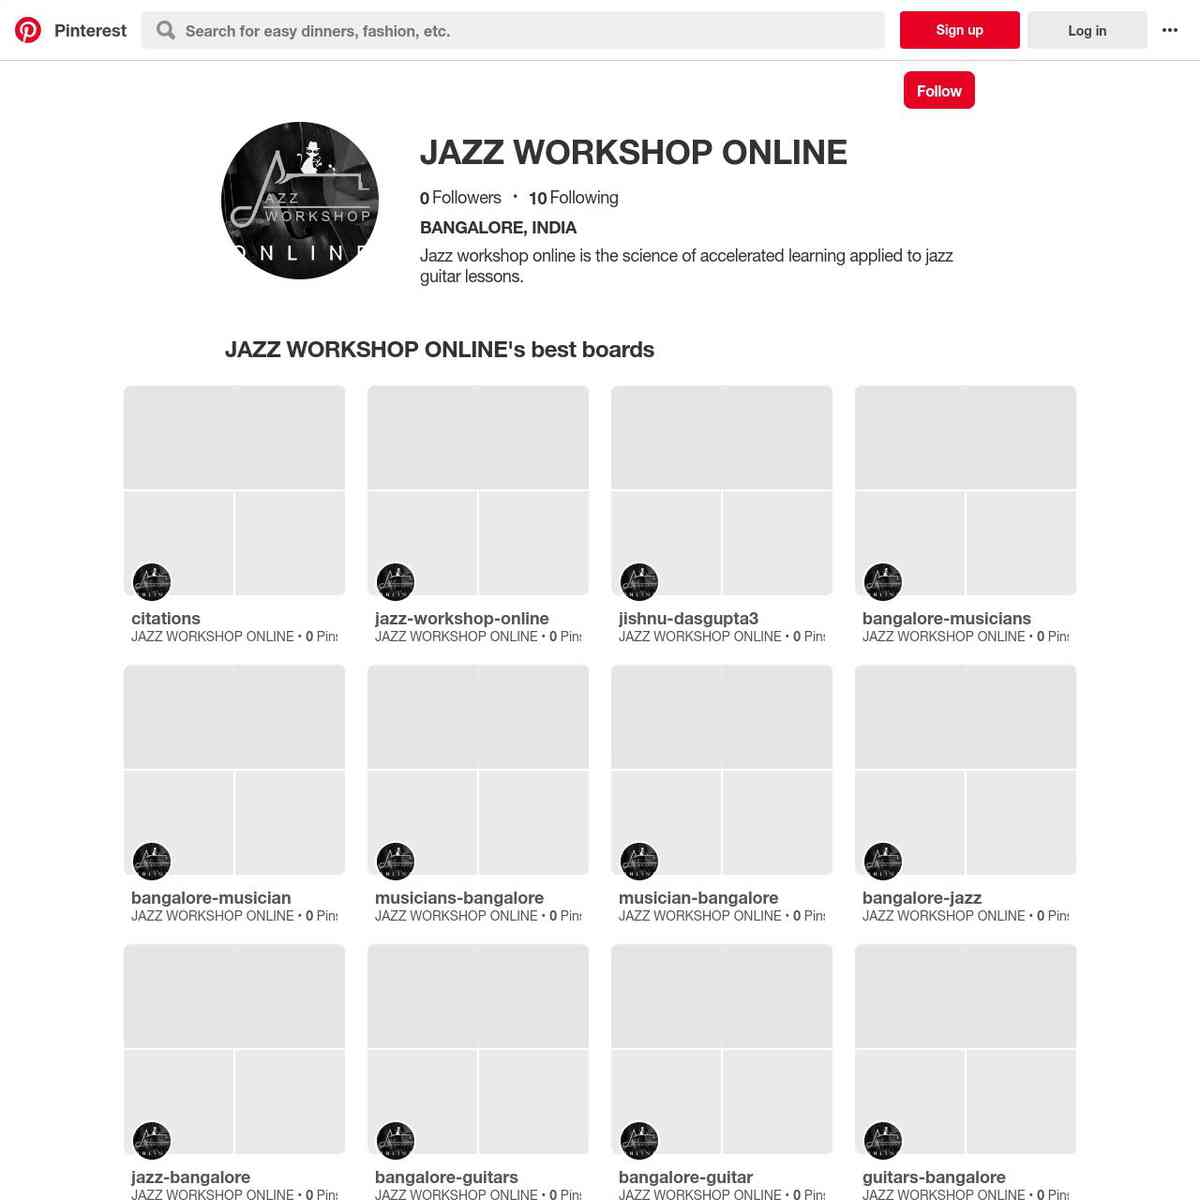 JAZZ WORKSHOP ONLINE PINTEREST